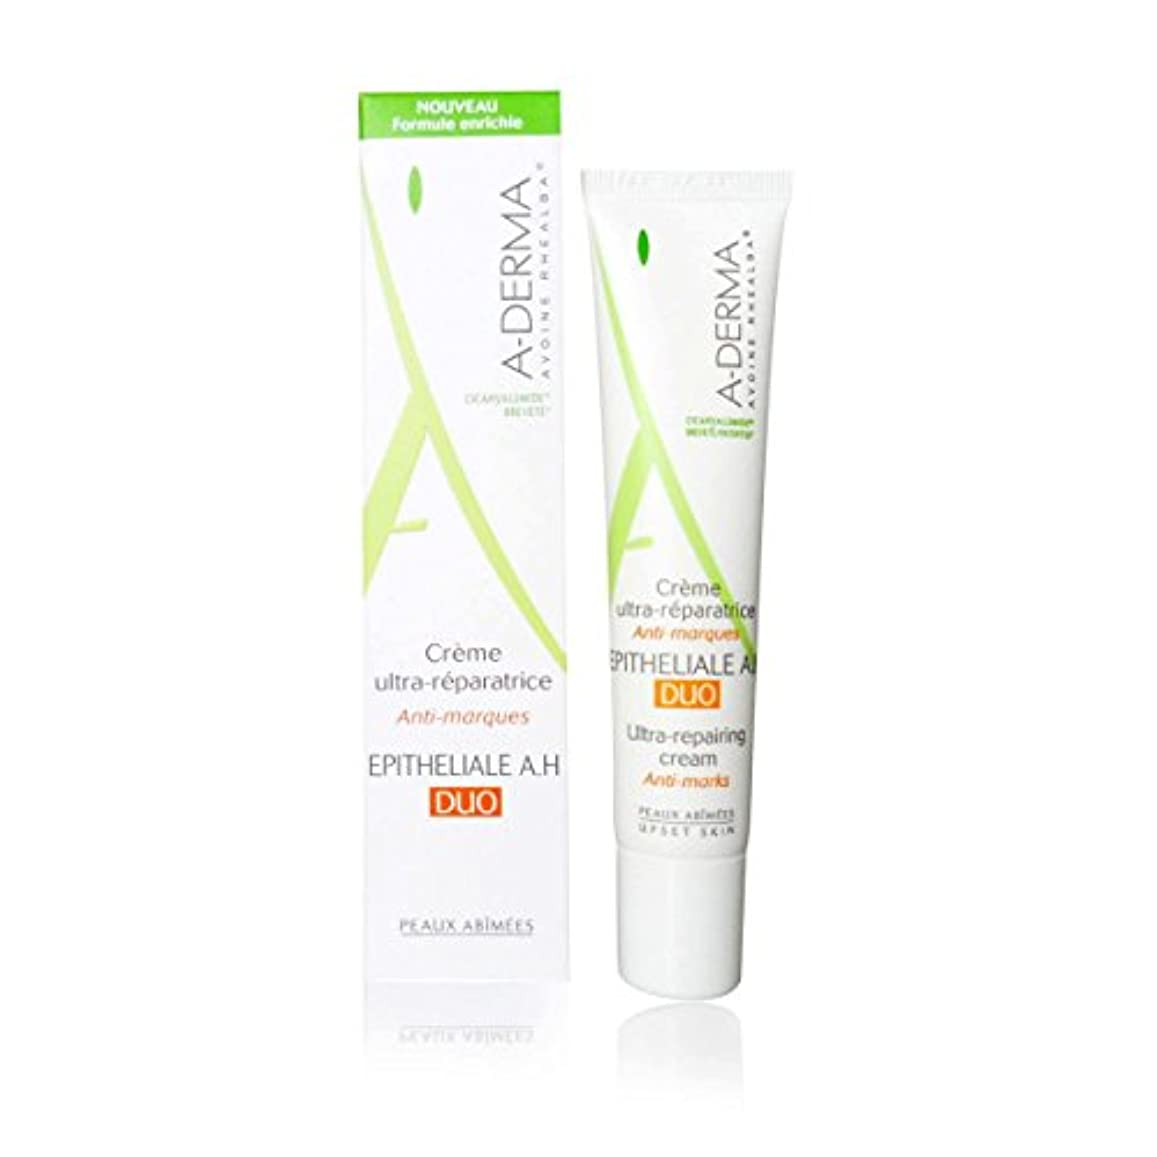 曇った鮫アニメーションA-derma Epitheliale A.h. Duo Ultra-repairing Cream 40ml [並行輸入品]